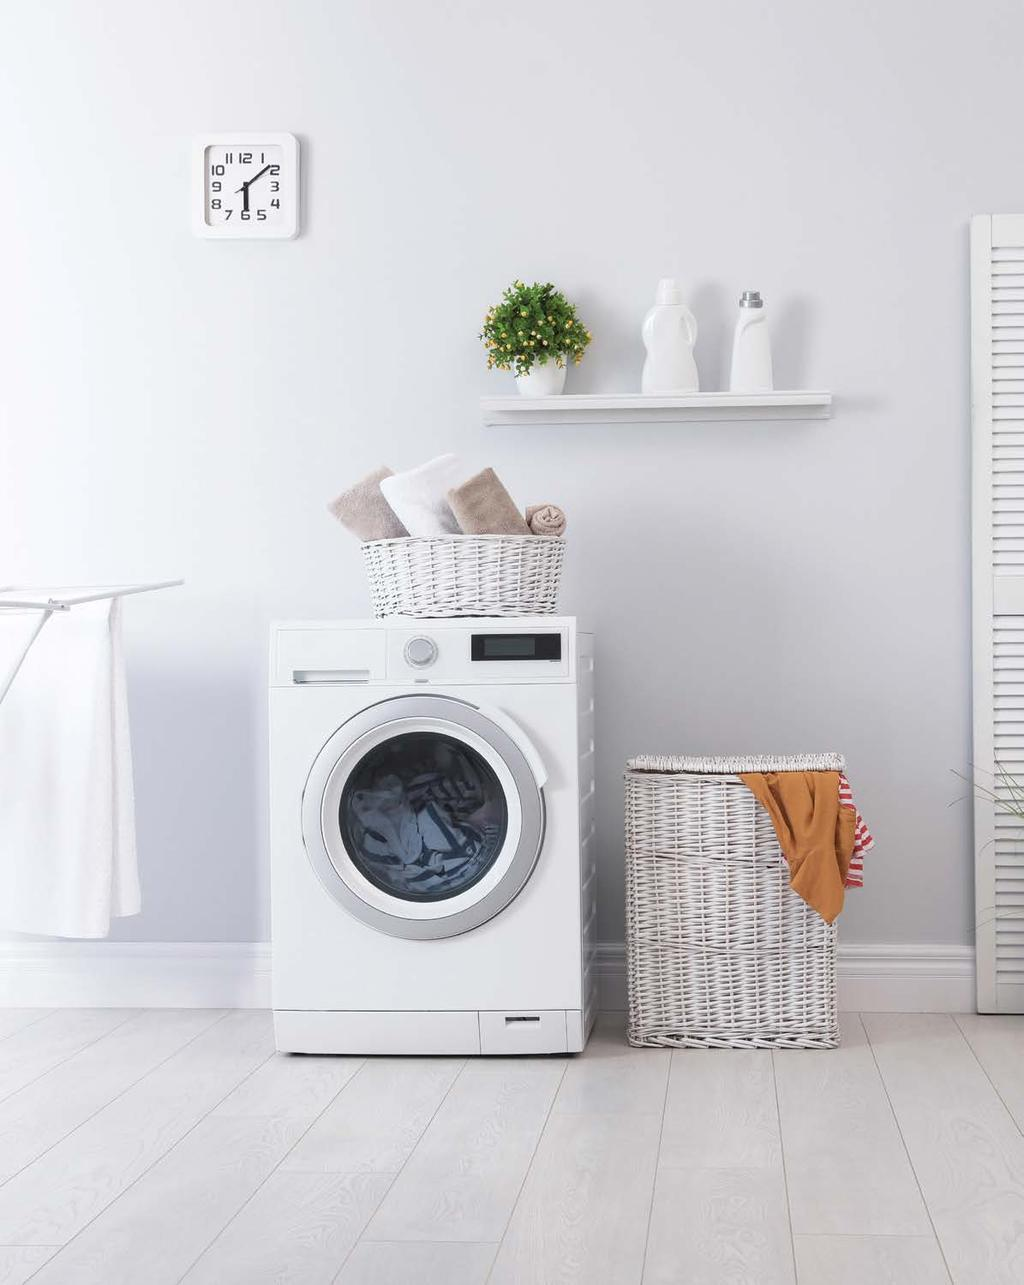 Auto Matic Washing Machine BAWMT-N08/10/12 WS 8/10/12 KG 4 Stainless